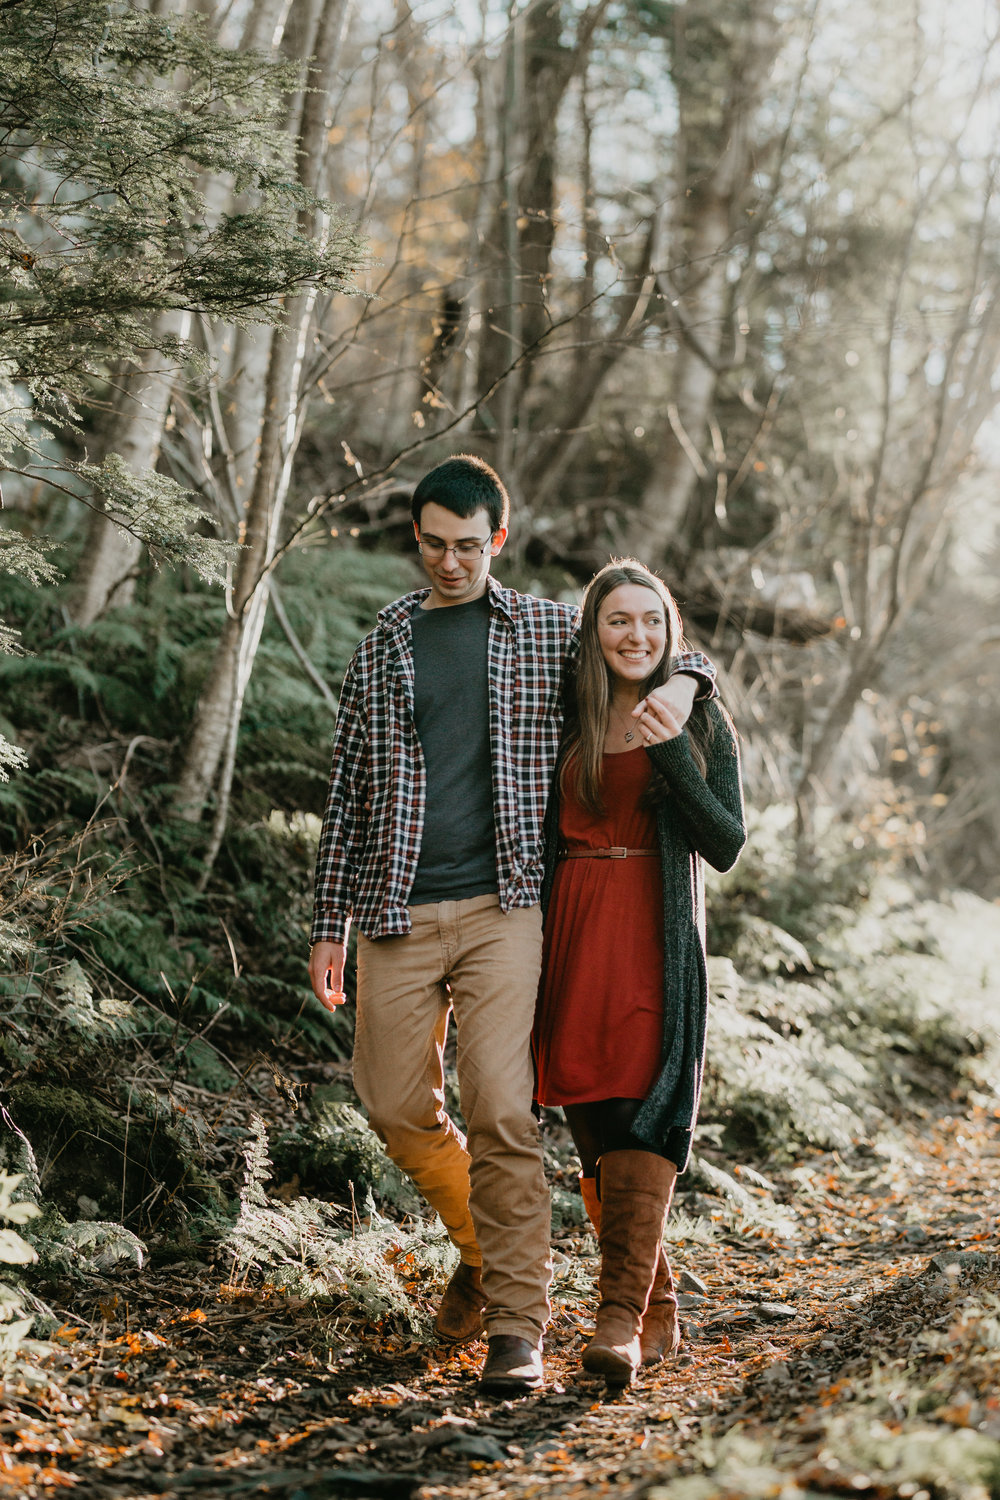 nicole-daacke-photography-shenandoah-national-park-adventure-engagement-session-with-fall-foliage-shenandoah-elopement-photographer-engagement-photos-in-virginia-charlottesville-national-park-adventure-elopement-photographer-3664.jpg